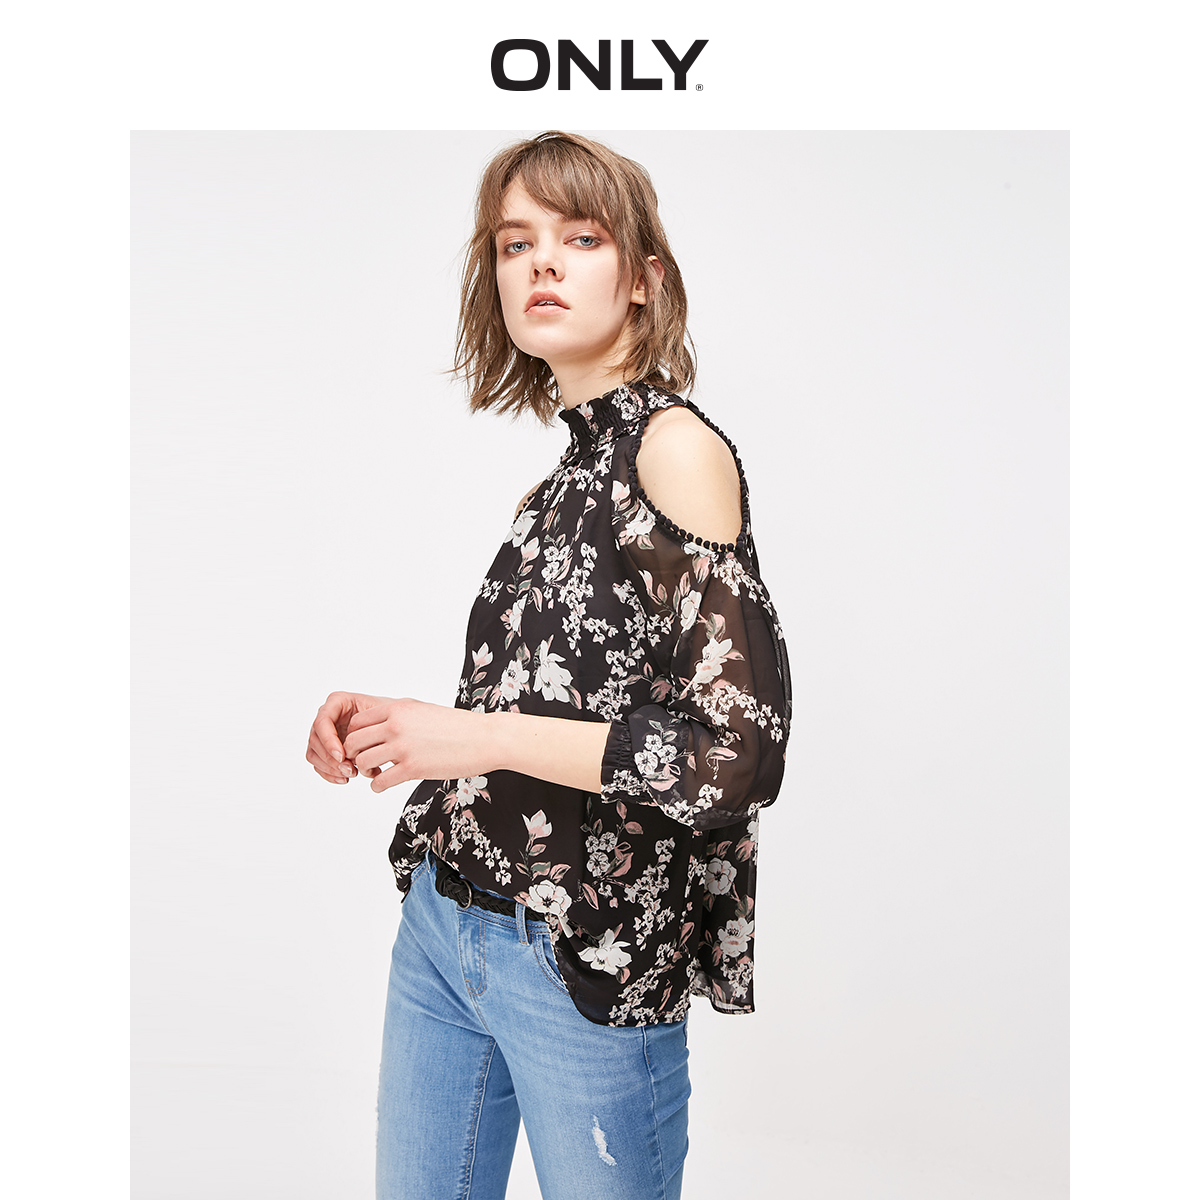 ONLY Women's Loose Fit Pom-pom Floral Off-the-shoulder Long-sleeved Chiffon Shirt   119151512